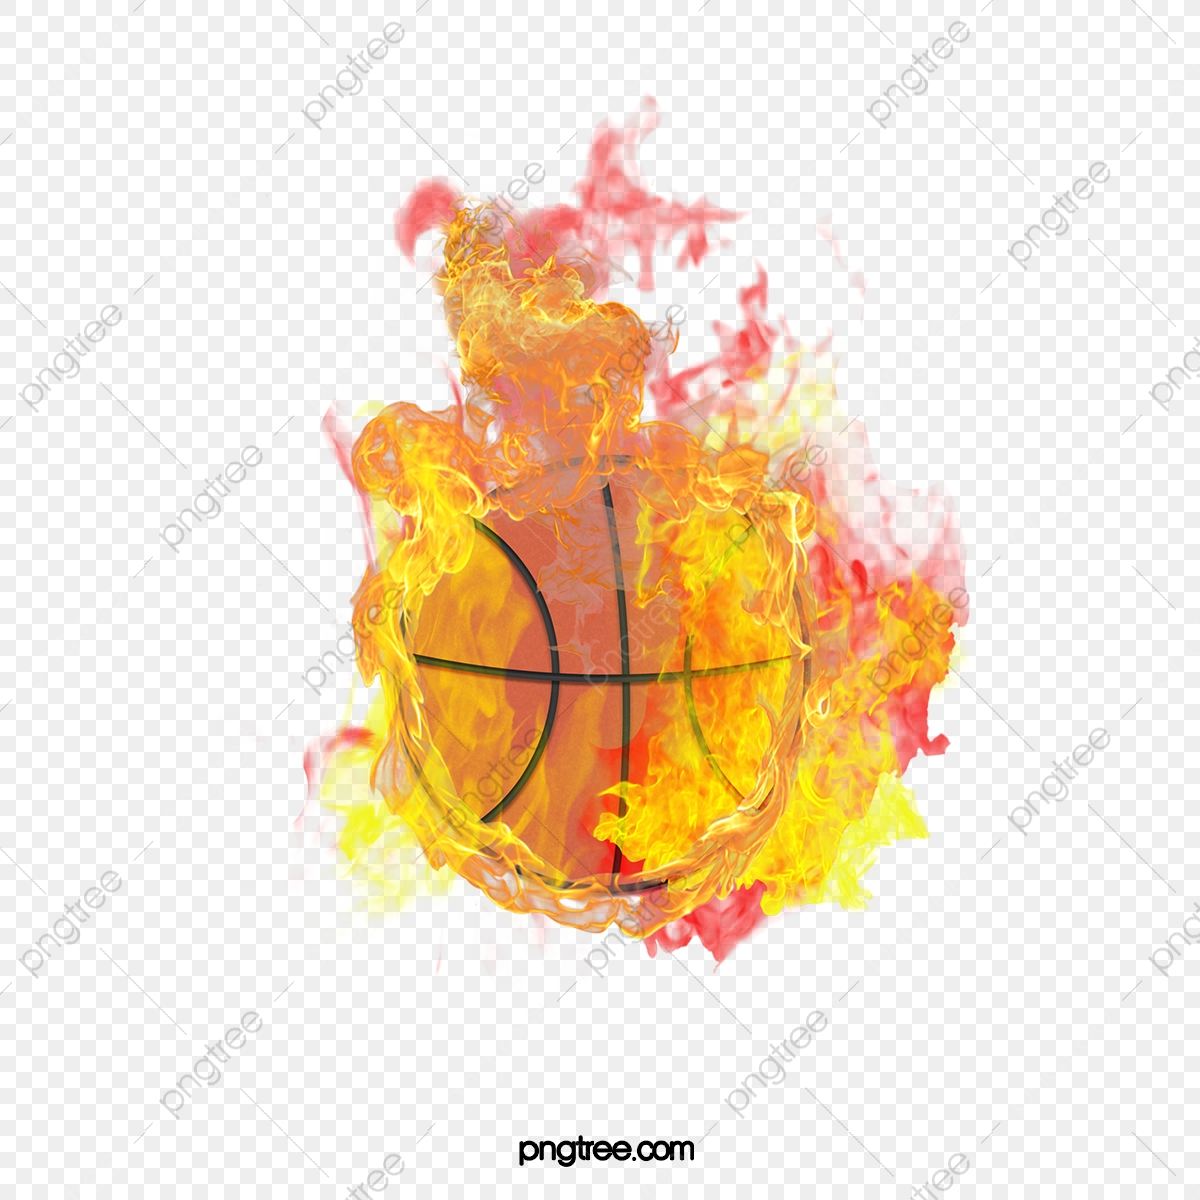 hight resolution of commercial use resource upgrade to premium plan and get license authorization upgradenow fireball basketball creative basketball clipart